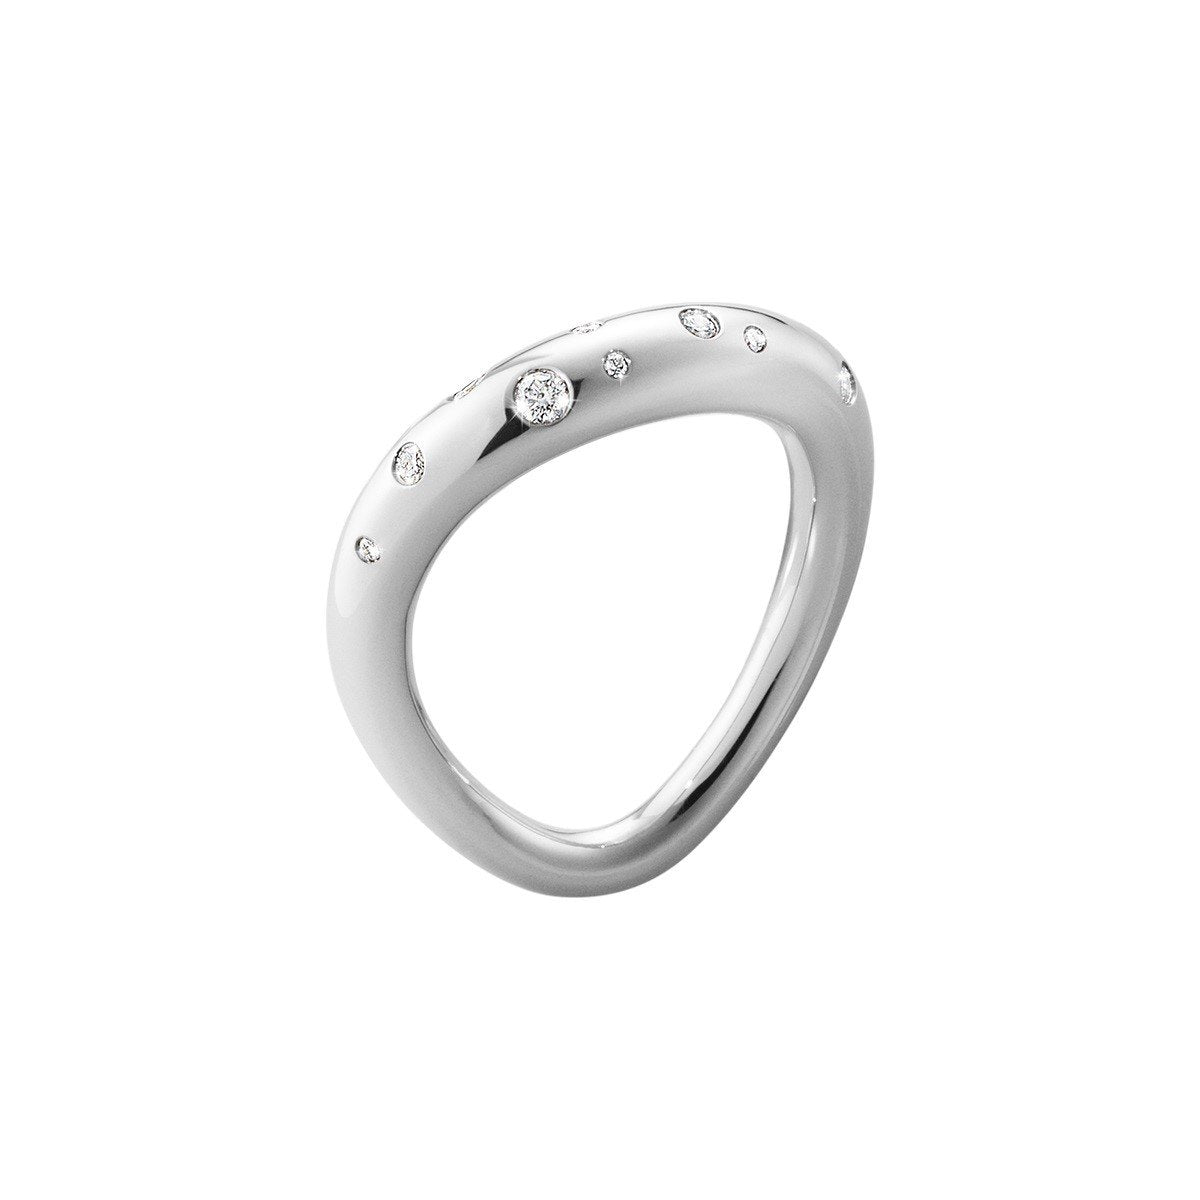 Georg Jensen Diamond Offspring Ring in Sterling Silver - Hamilton & Inches